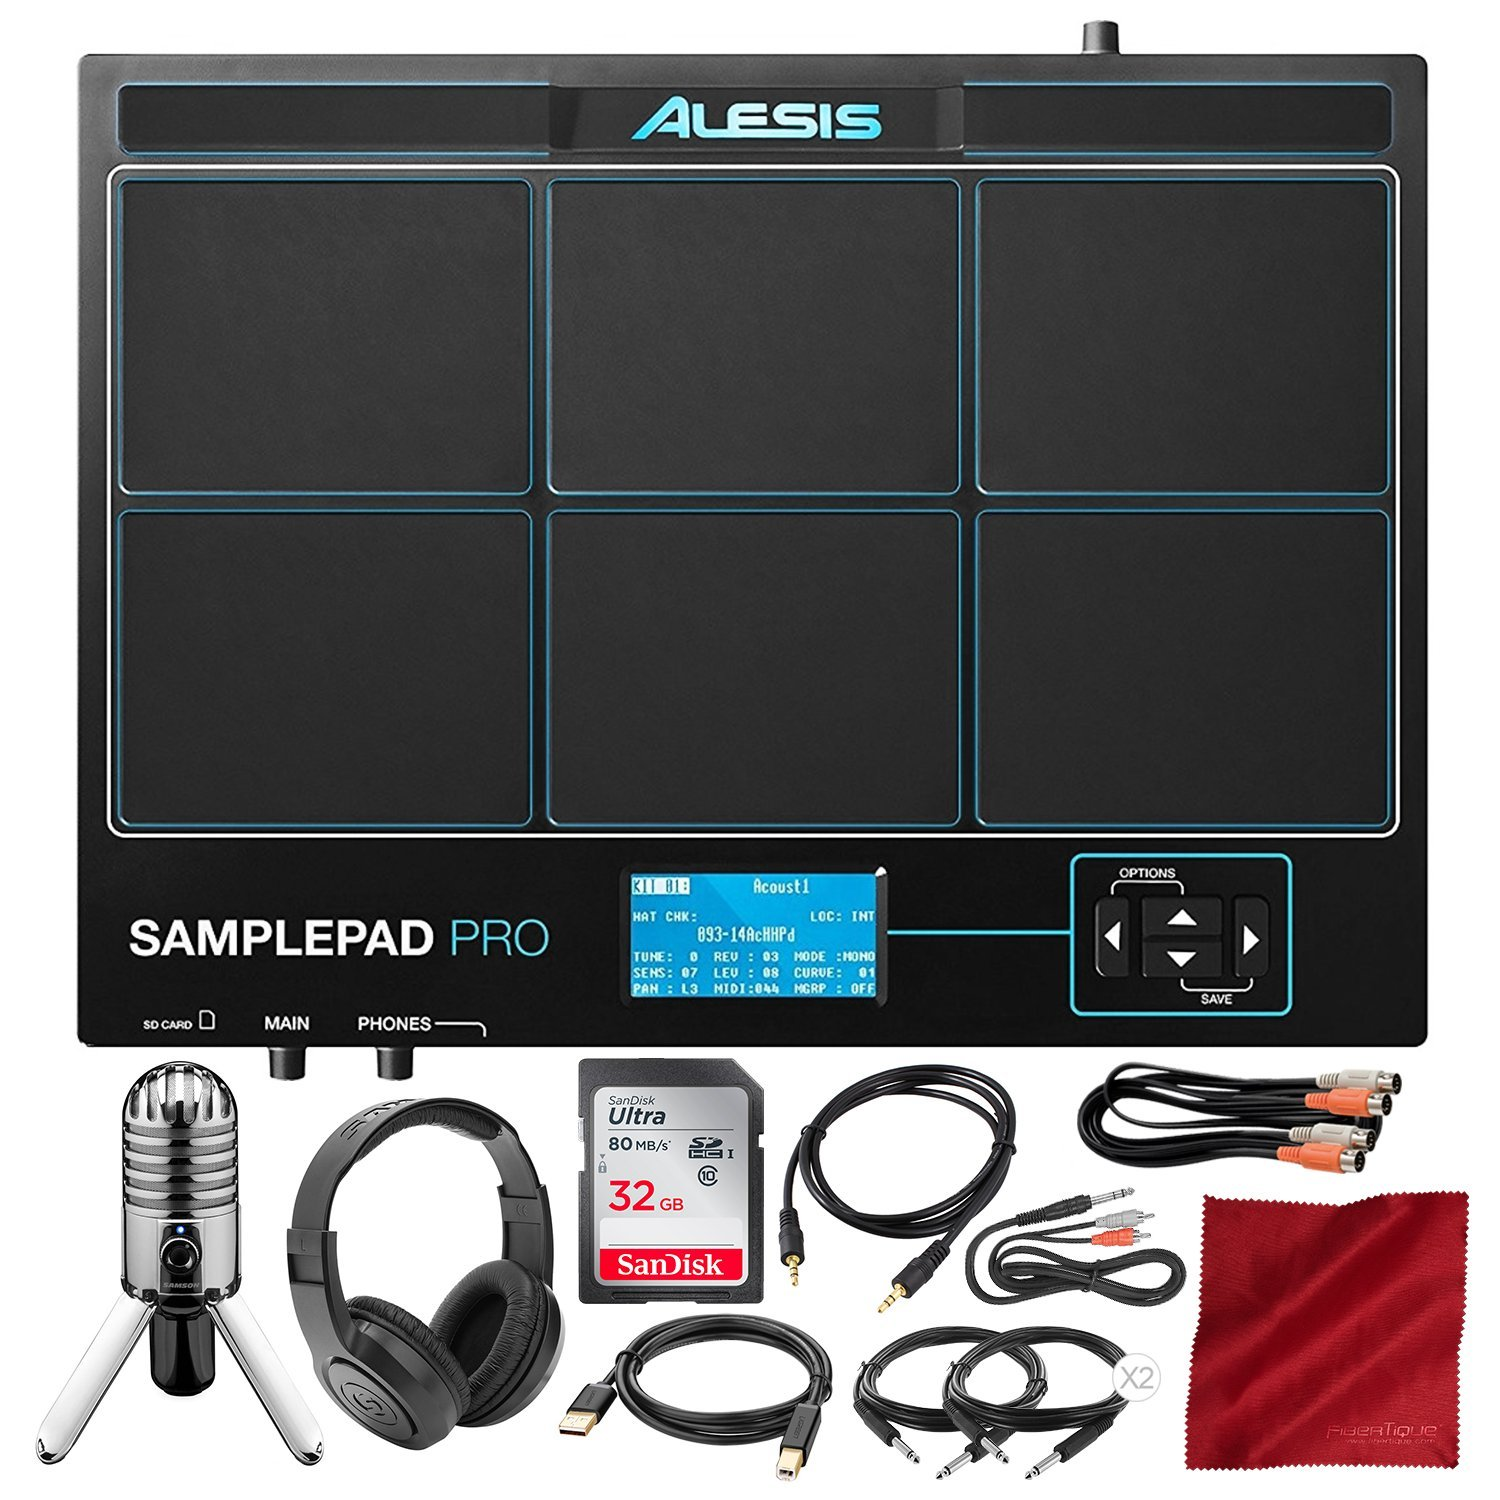 Alesis Sample Pad Pro 8-Pad Percussion and Triggering Instrument with Samson Meteor Mic USB Microphone, Headphones, 16GB Card, and Assorted Cables Bundle by Alesis